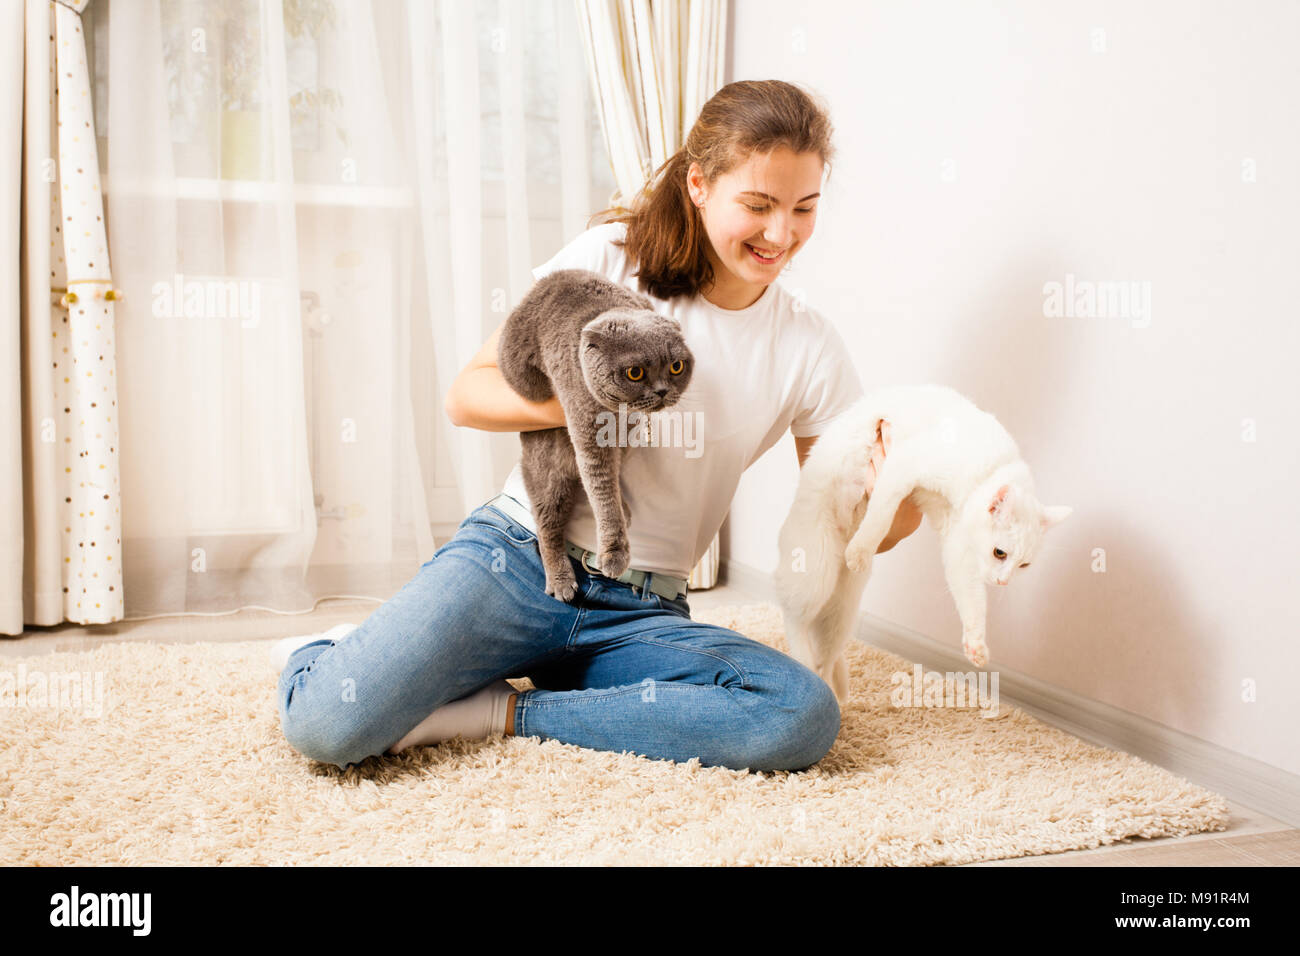 The girlis is holding cats - Stock Image